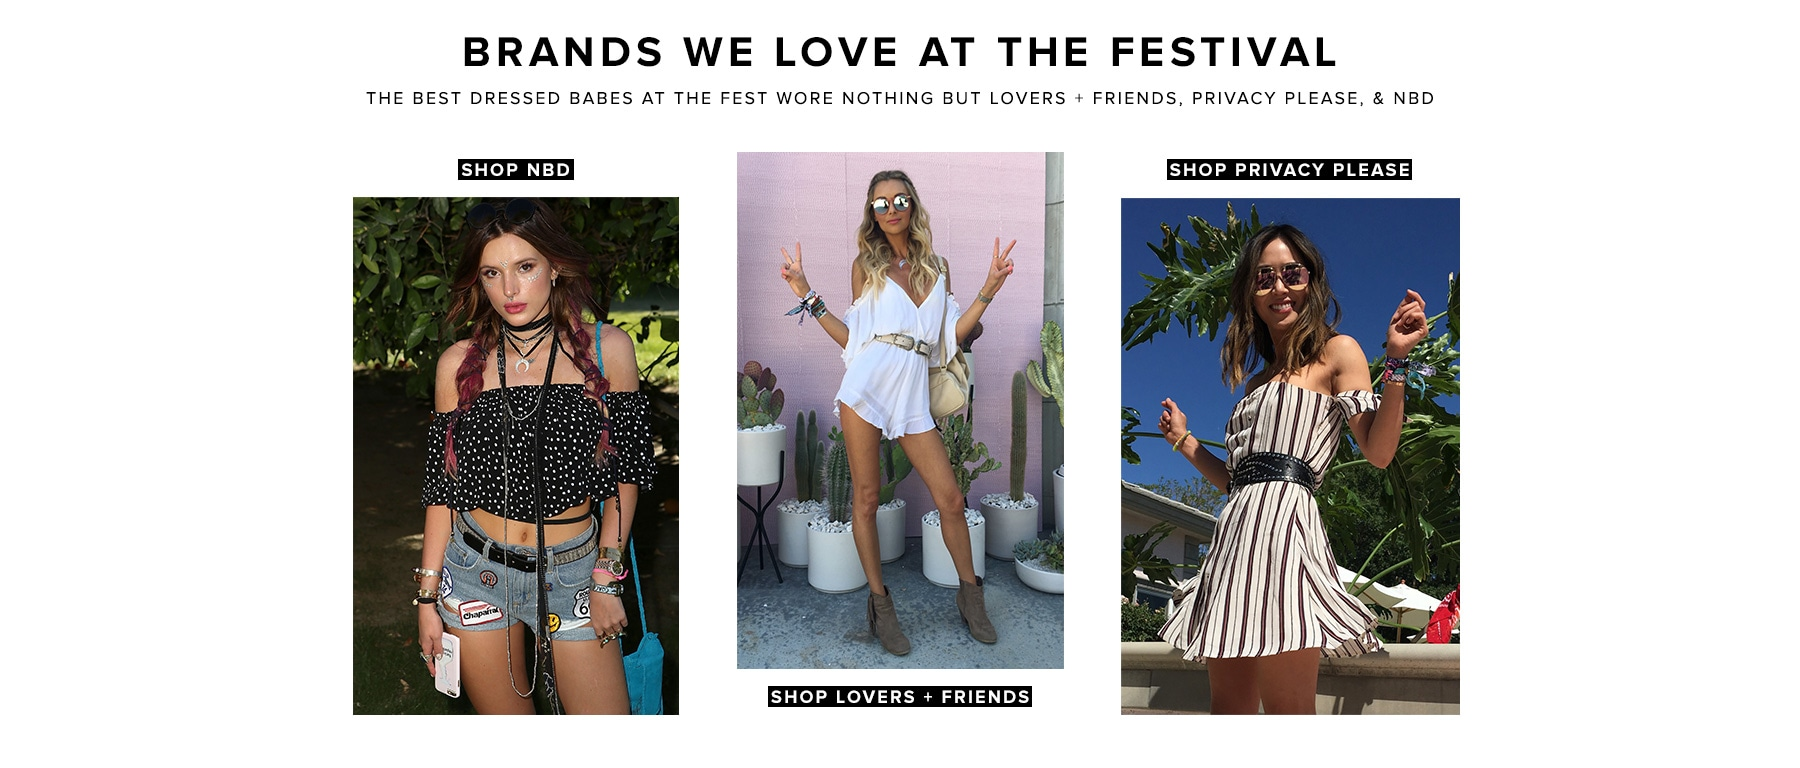 Brands We Love at the Festival